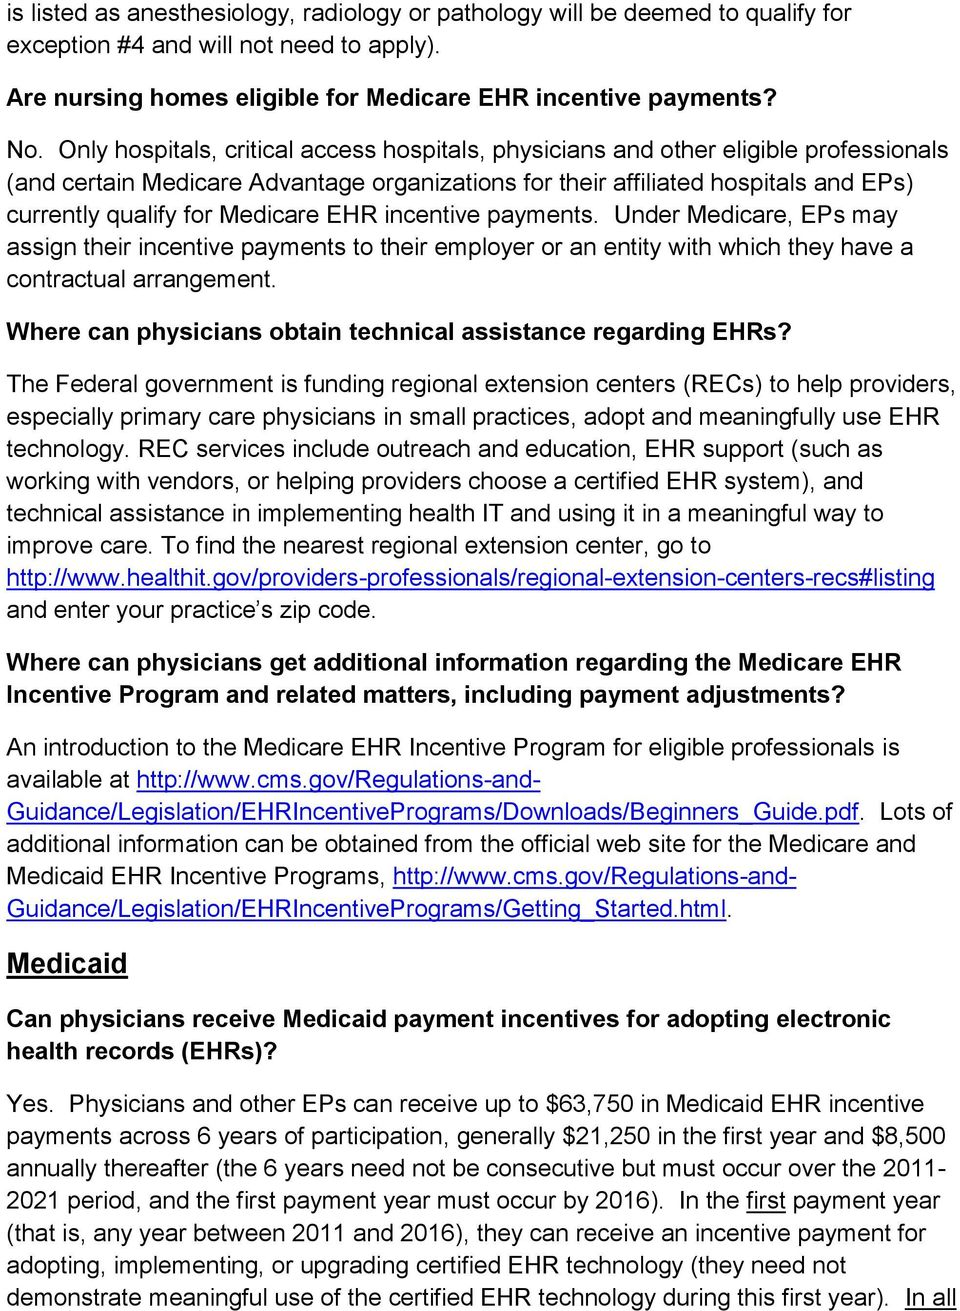 Medicare EHR incentive payments. Under Medicare, EPs may assign their incentive payments to their employer or an entity with which they have a contractual arrangement.